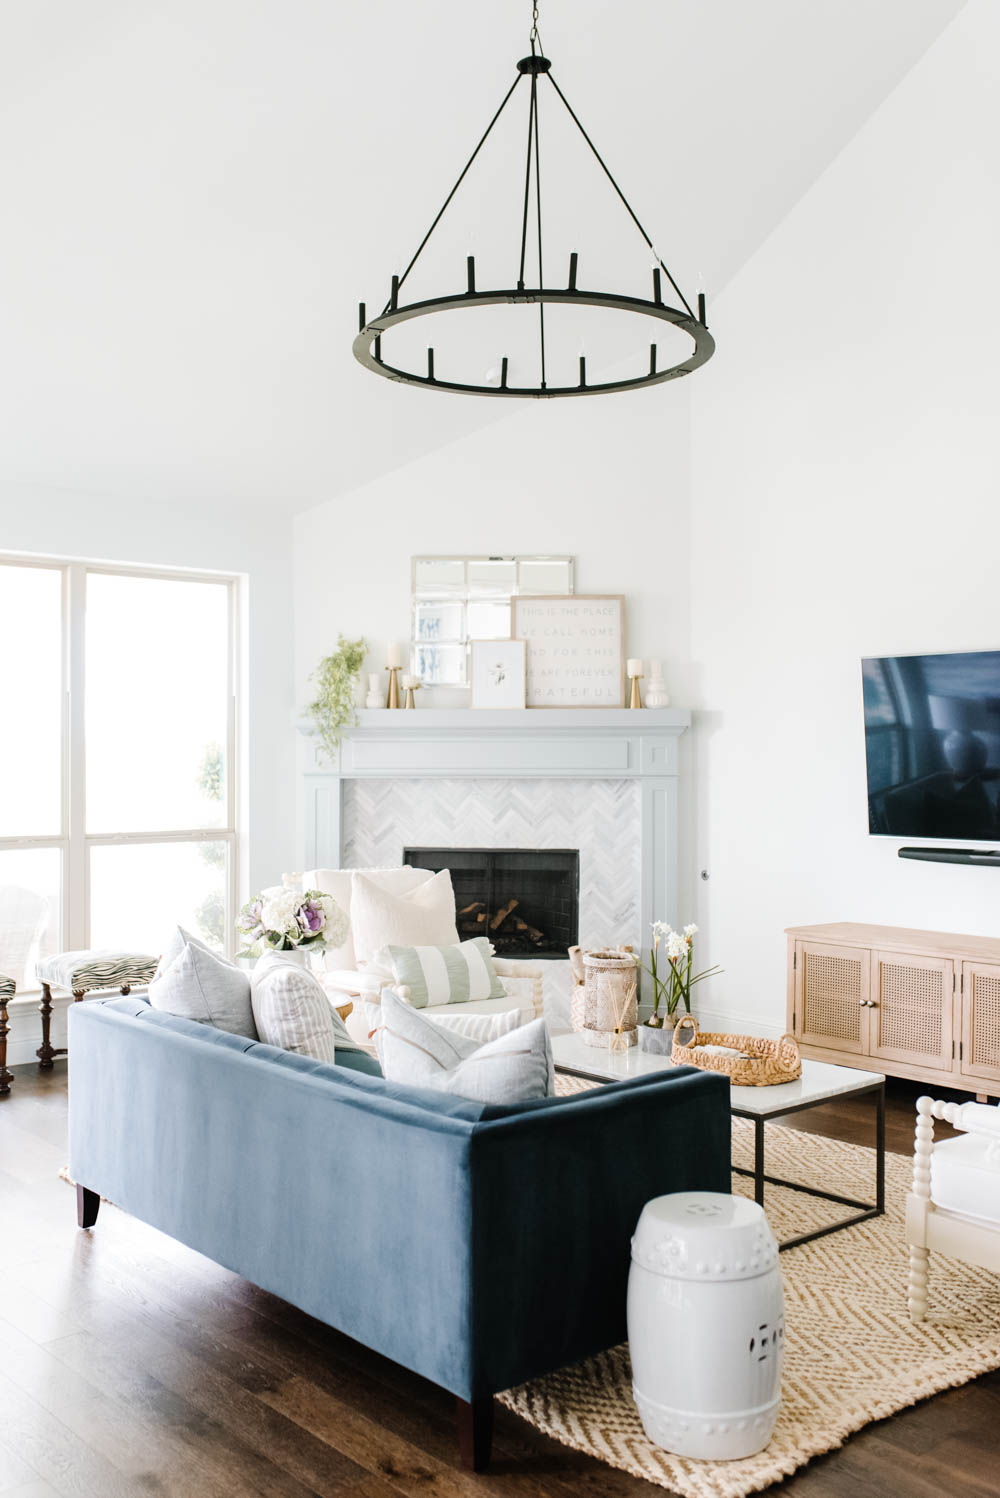 Update your home with these simple tips that are affordable! #ABlissfulNrest #livingroomdecor #livingroomdesign